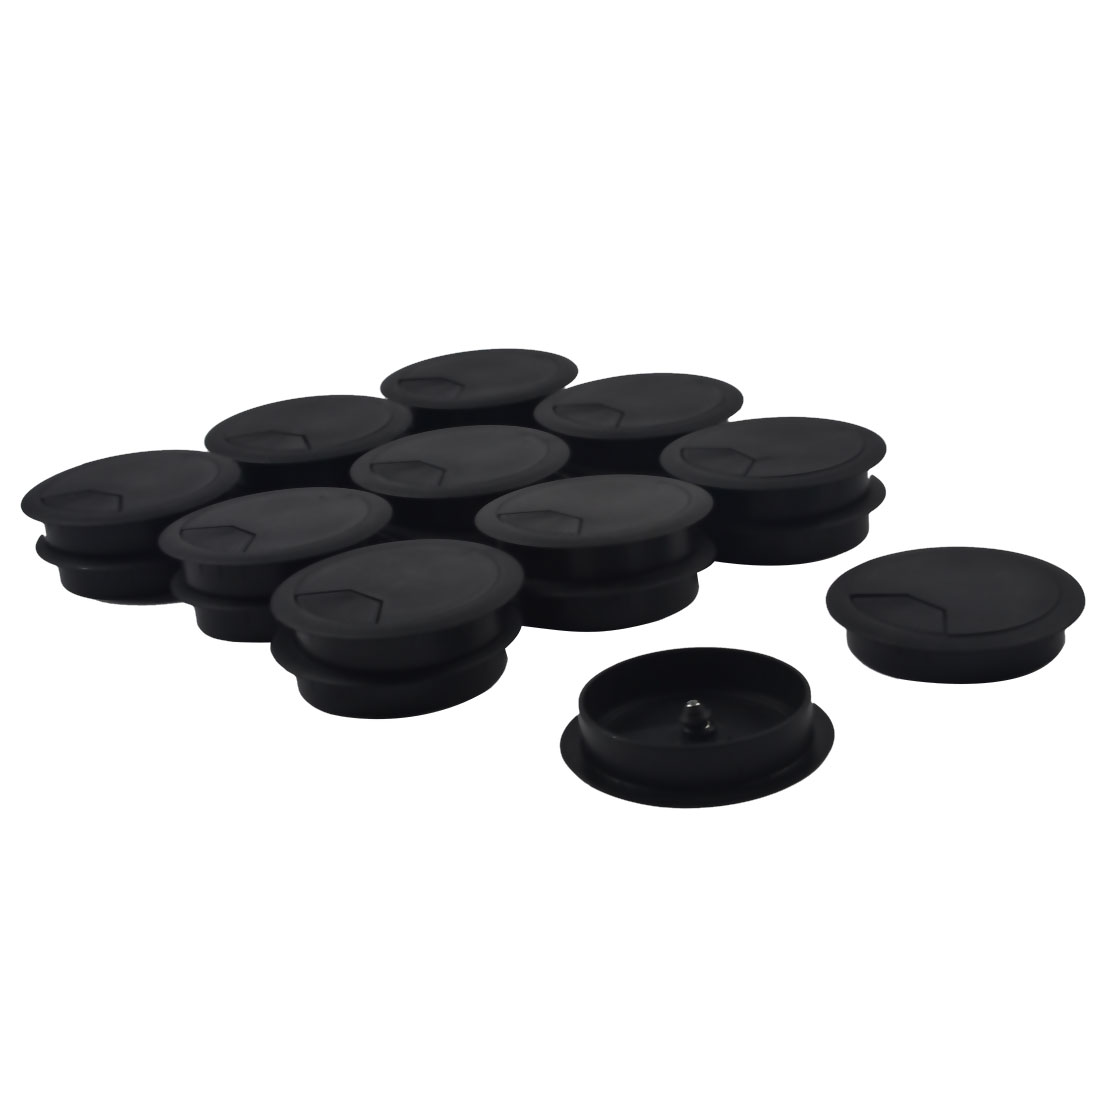 Computer Table Plastic Round Grommet Wire Cord Cable Hole Cover Black 79mm Dia 20pcs